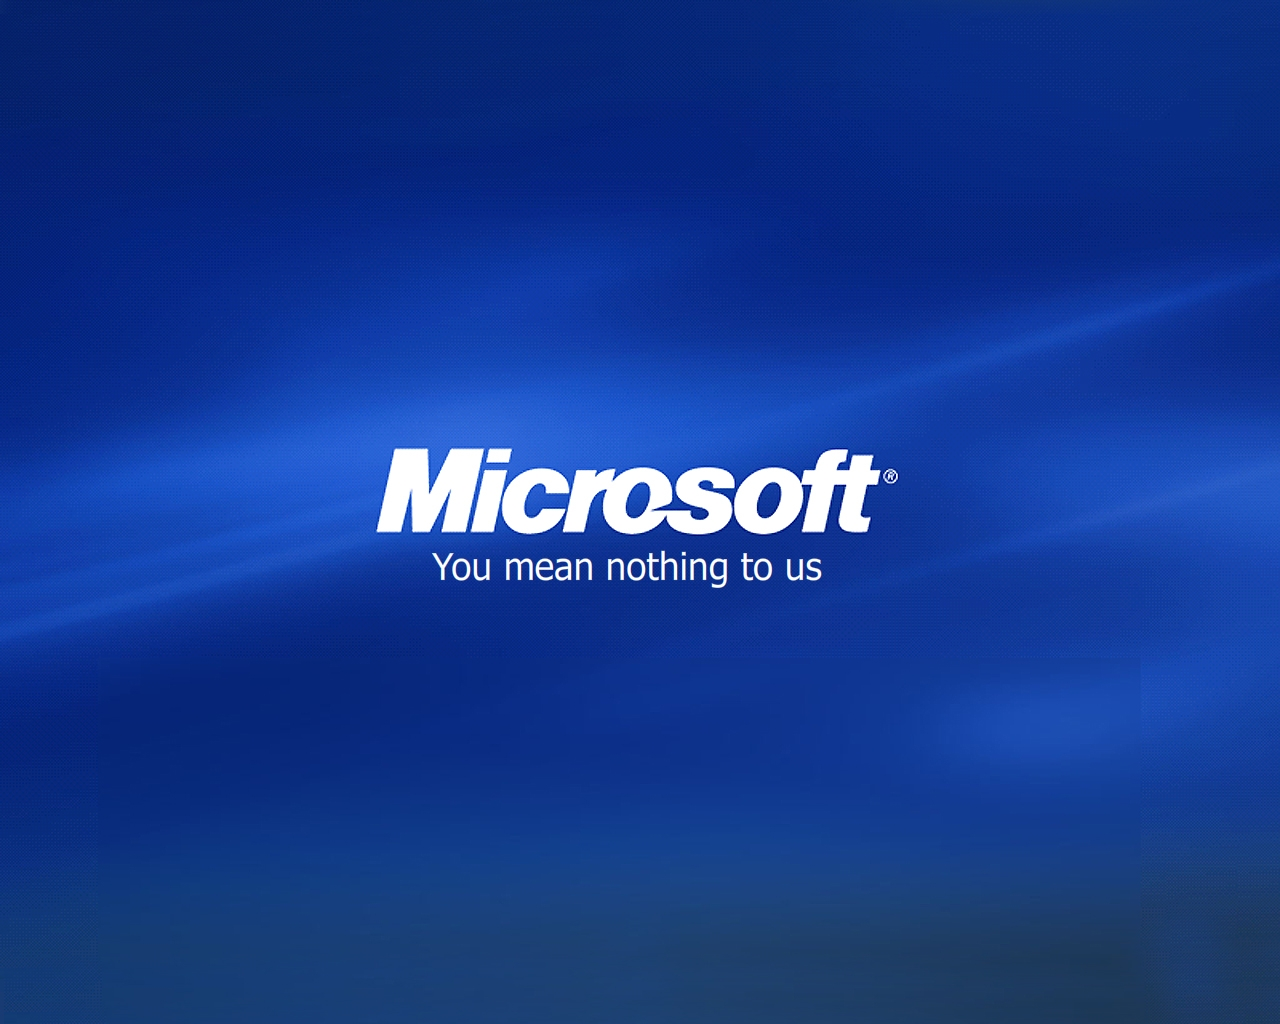 Microsoft Desktop Wallpaper Pictures 1280x1024